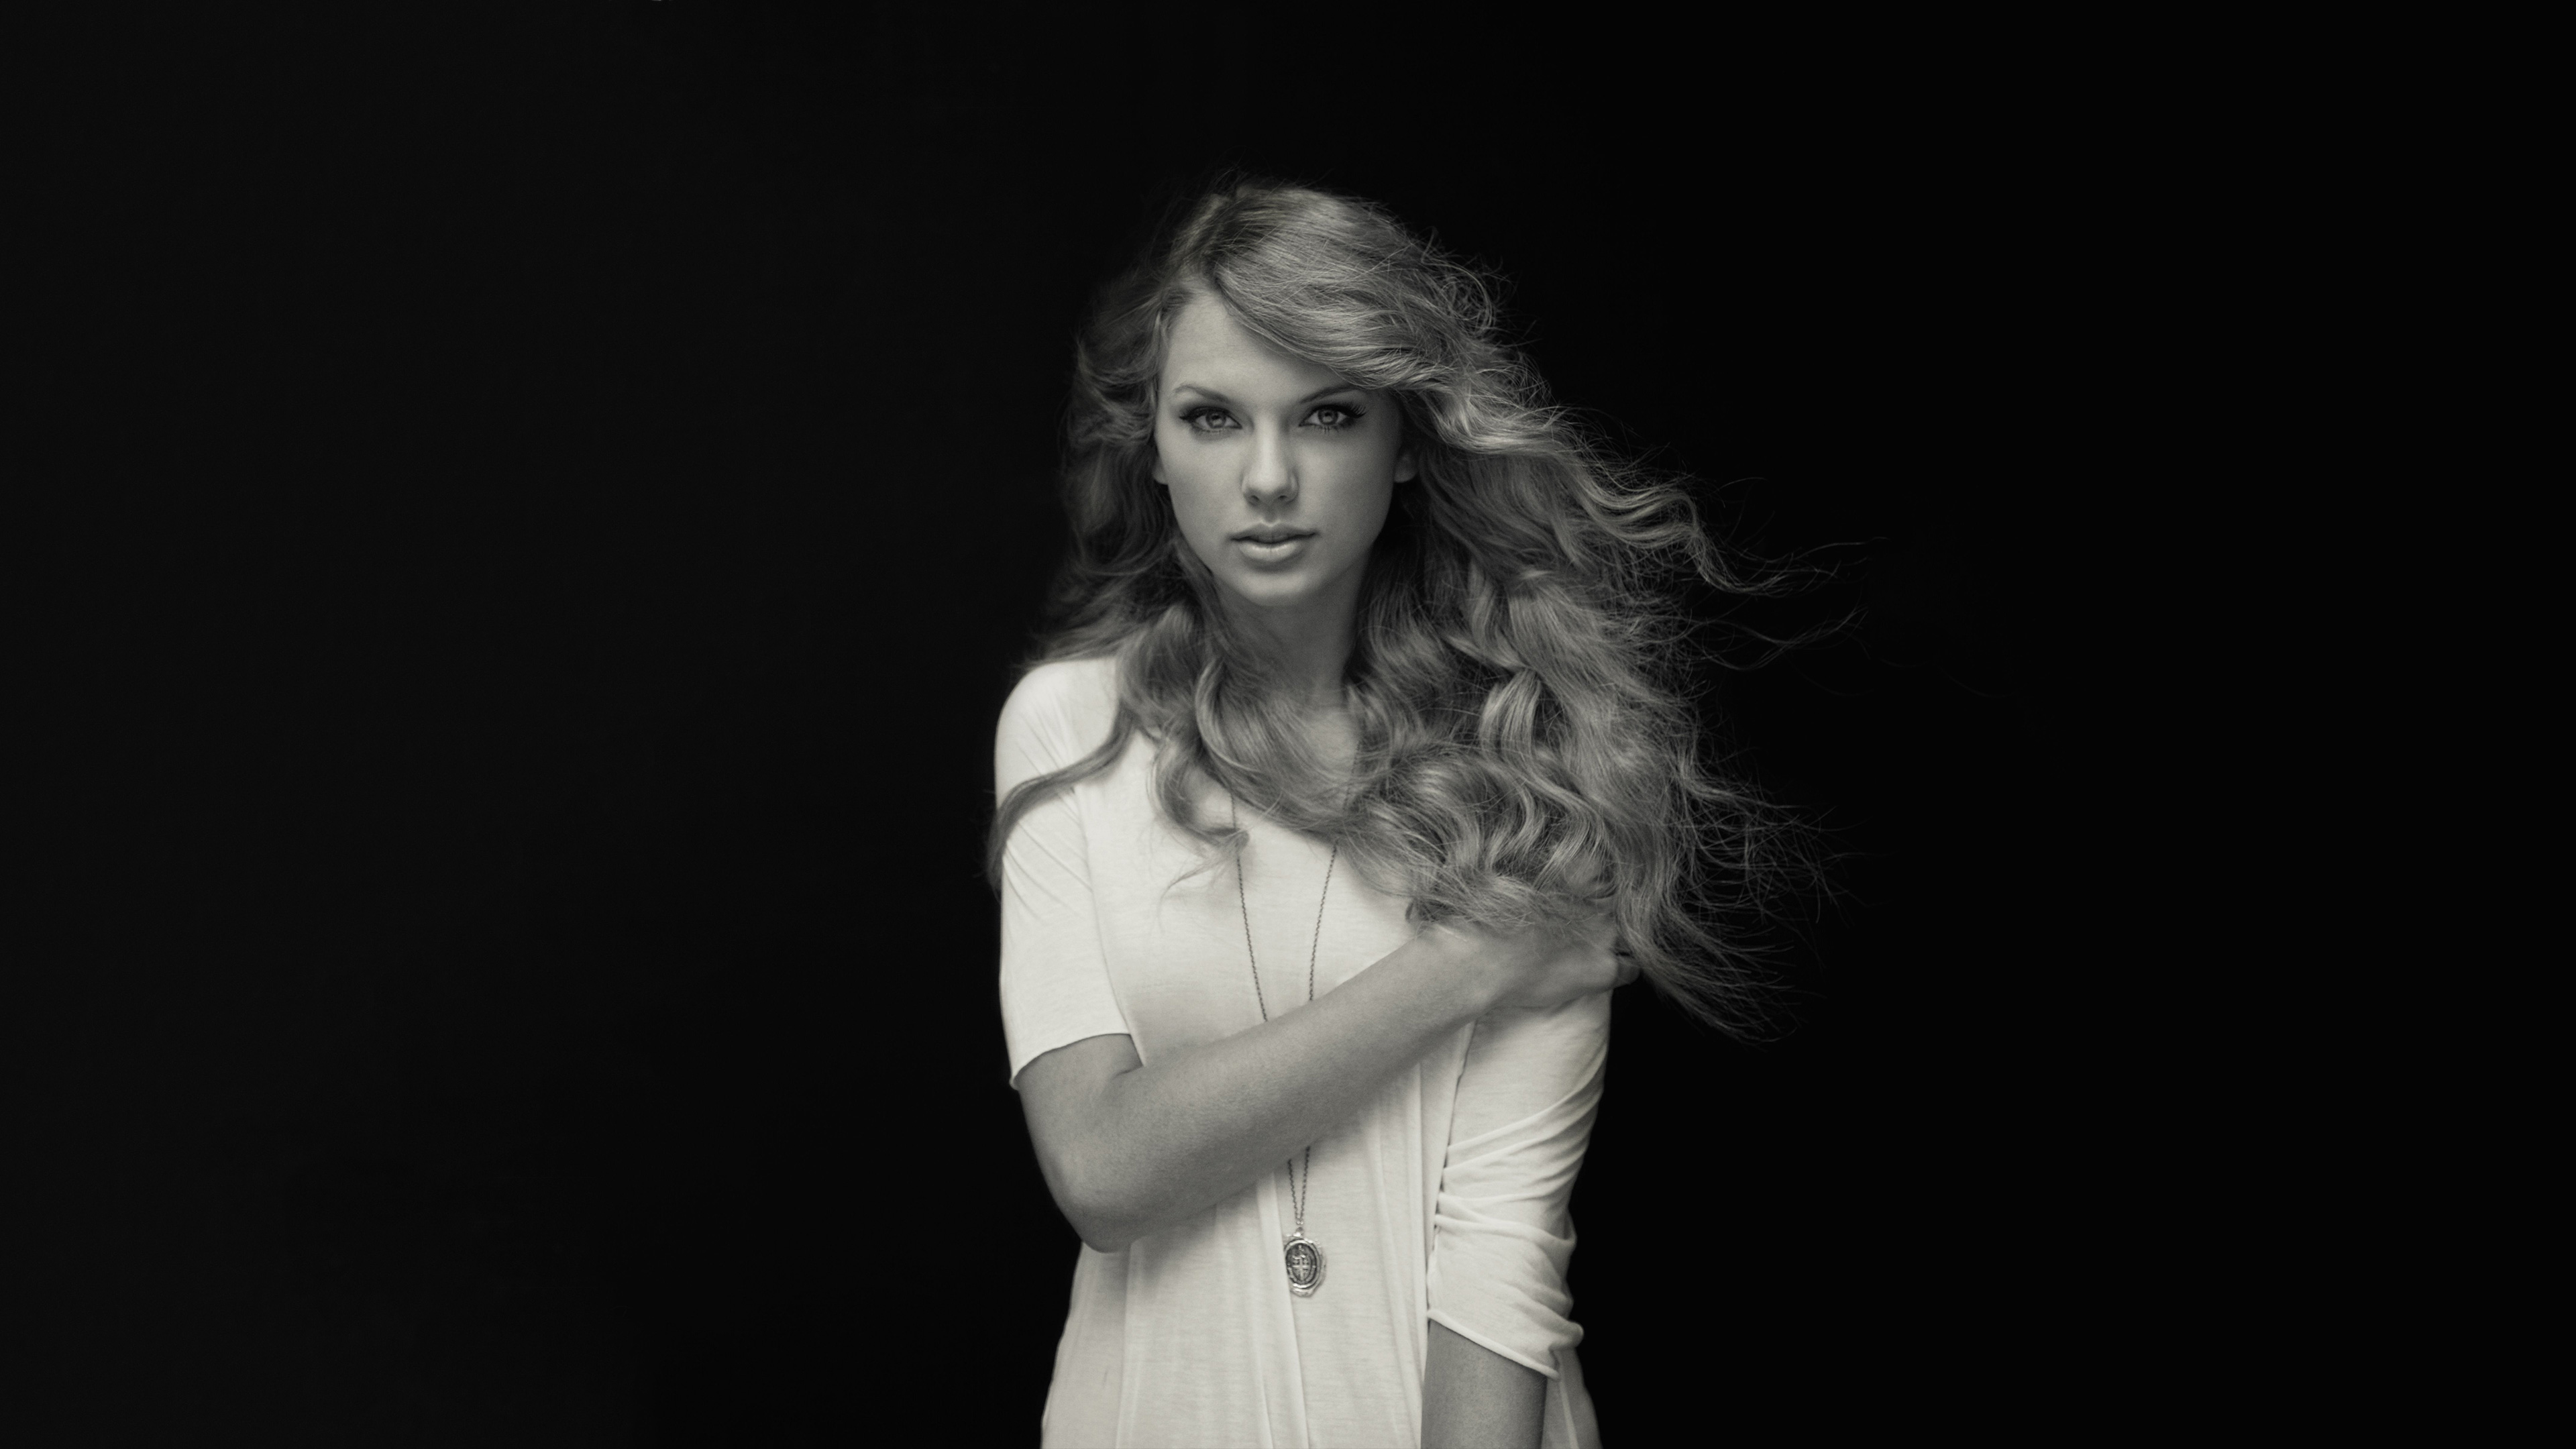 Taylor Swift Black And White 4k Hd Music 4k Wallpapers Images Backgrounds Photos And Pictures